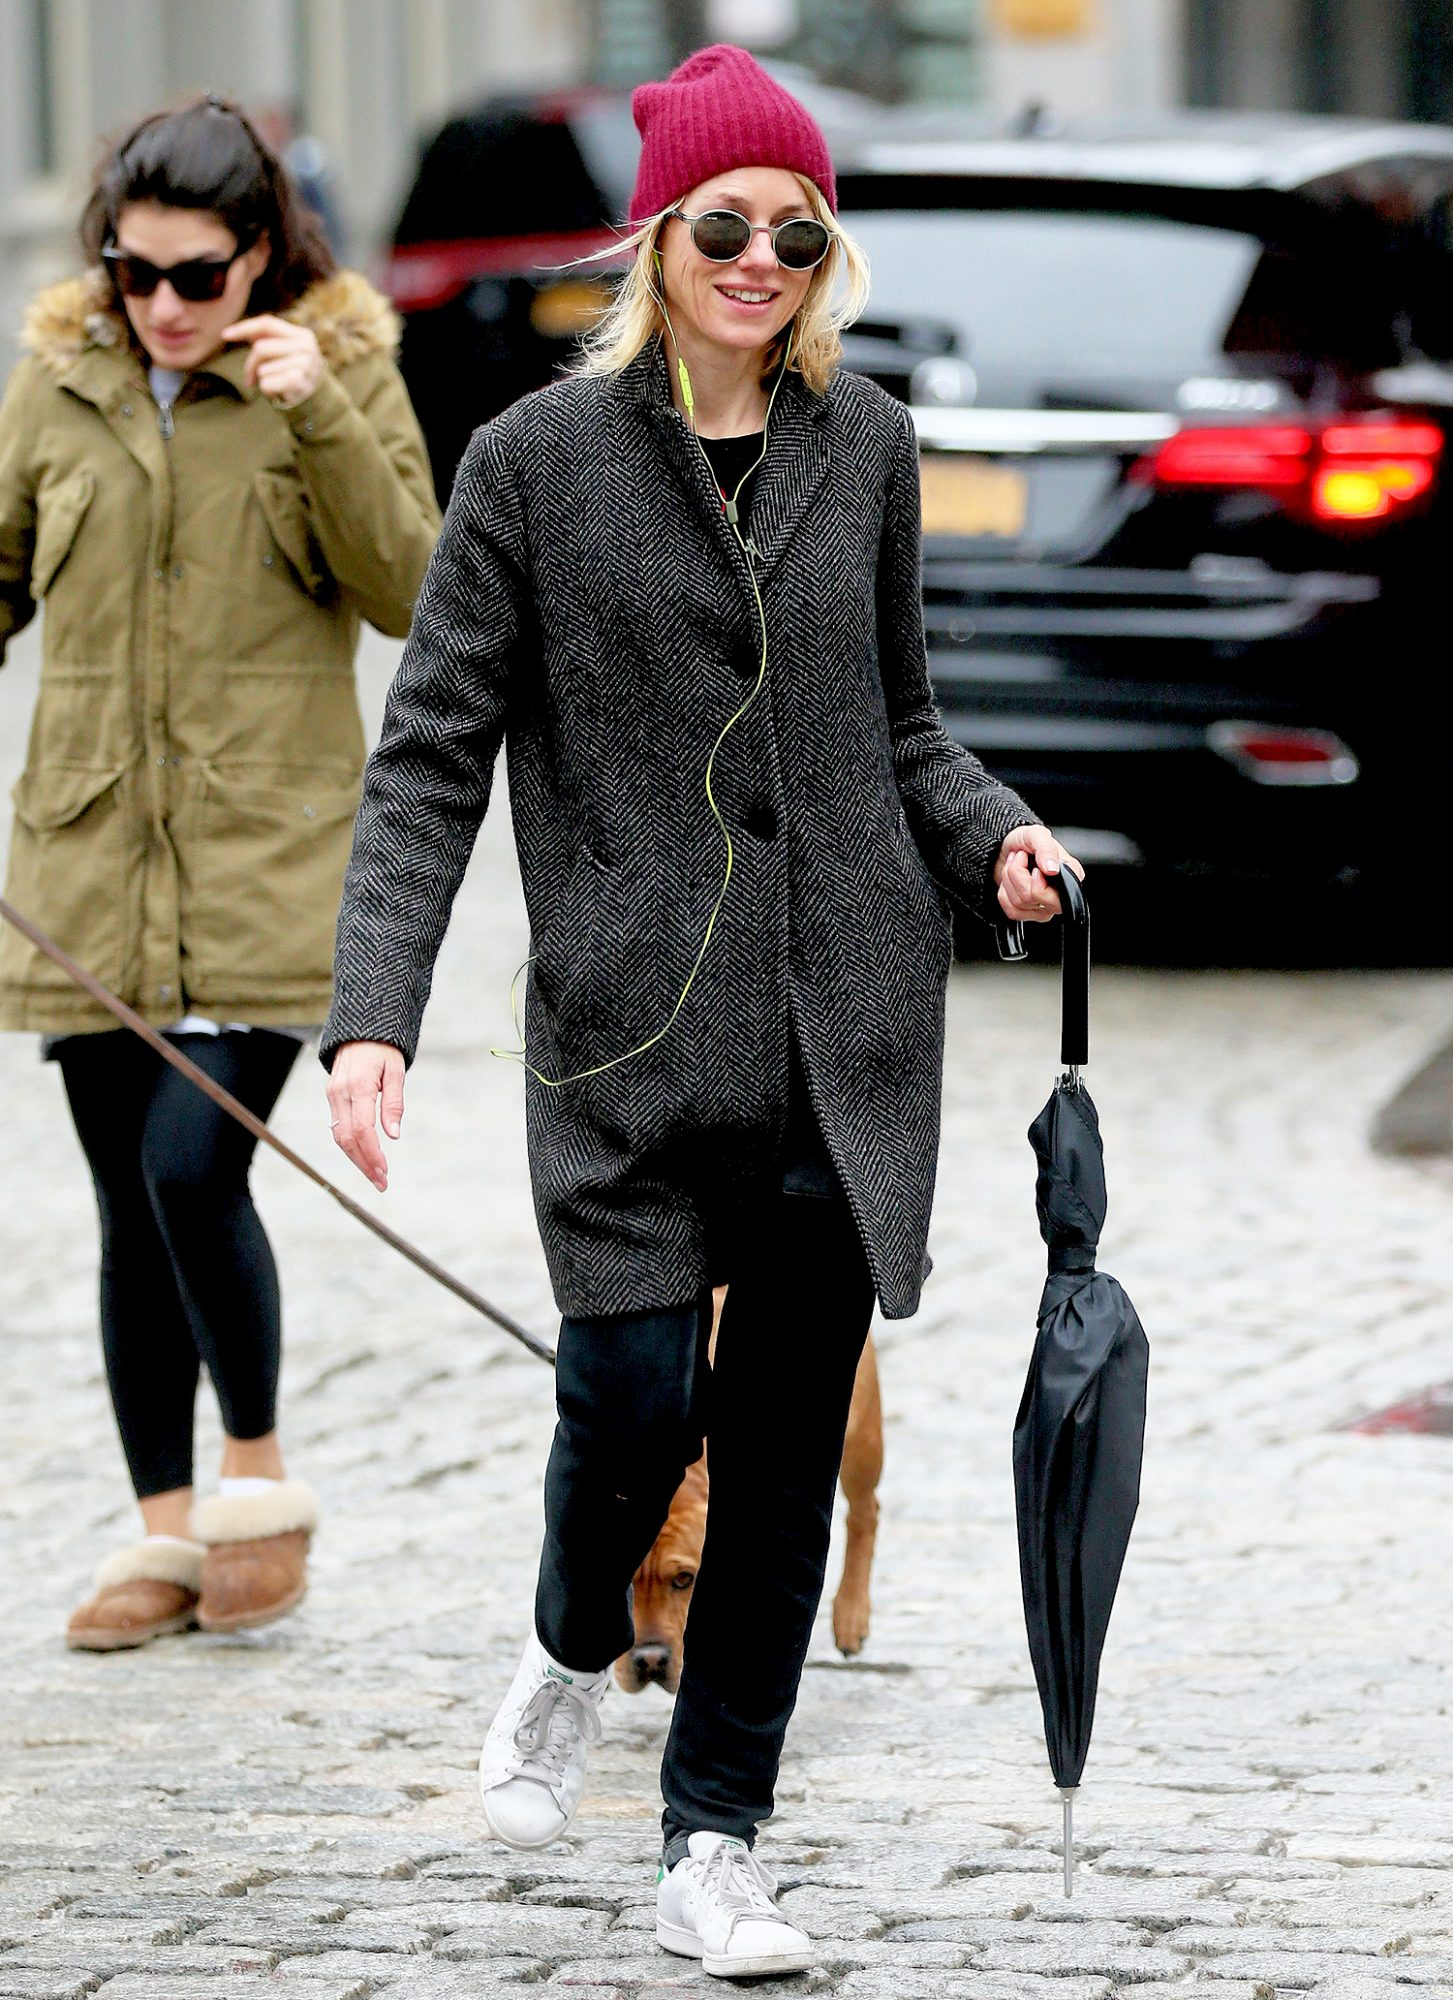 EXCLUSIVE: English actress Naomi Watts walks home listening to music in the rain with her umbrella in New York City